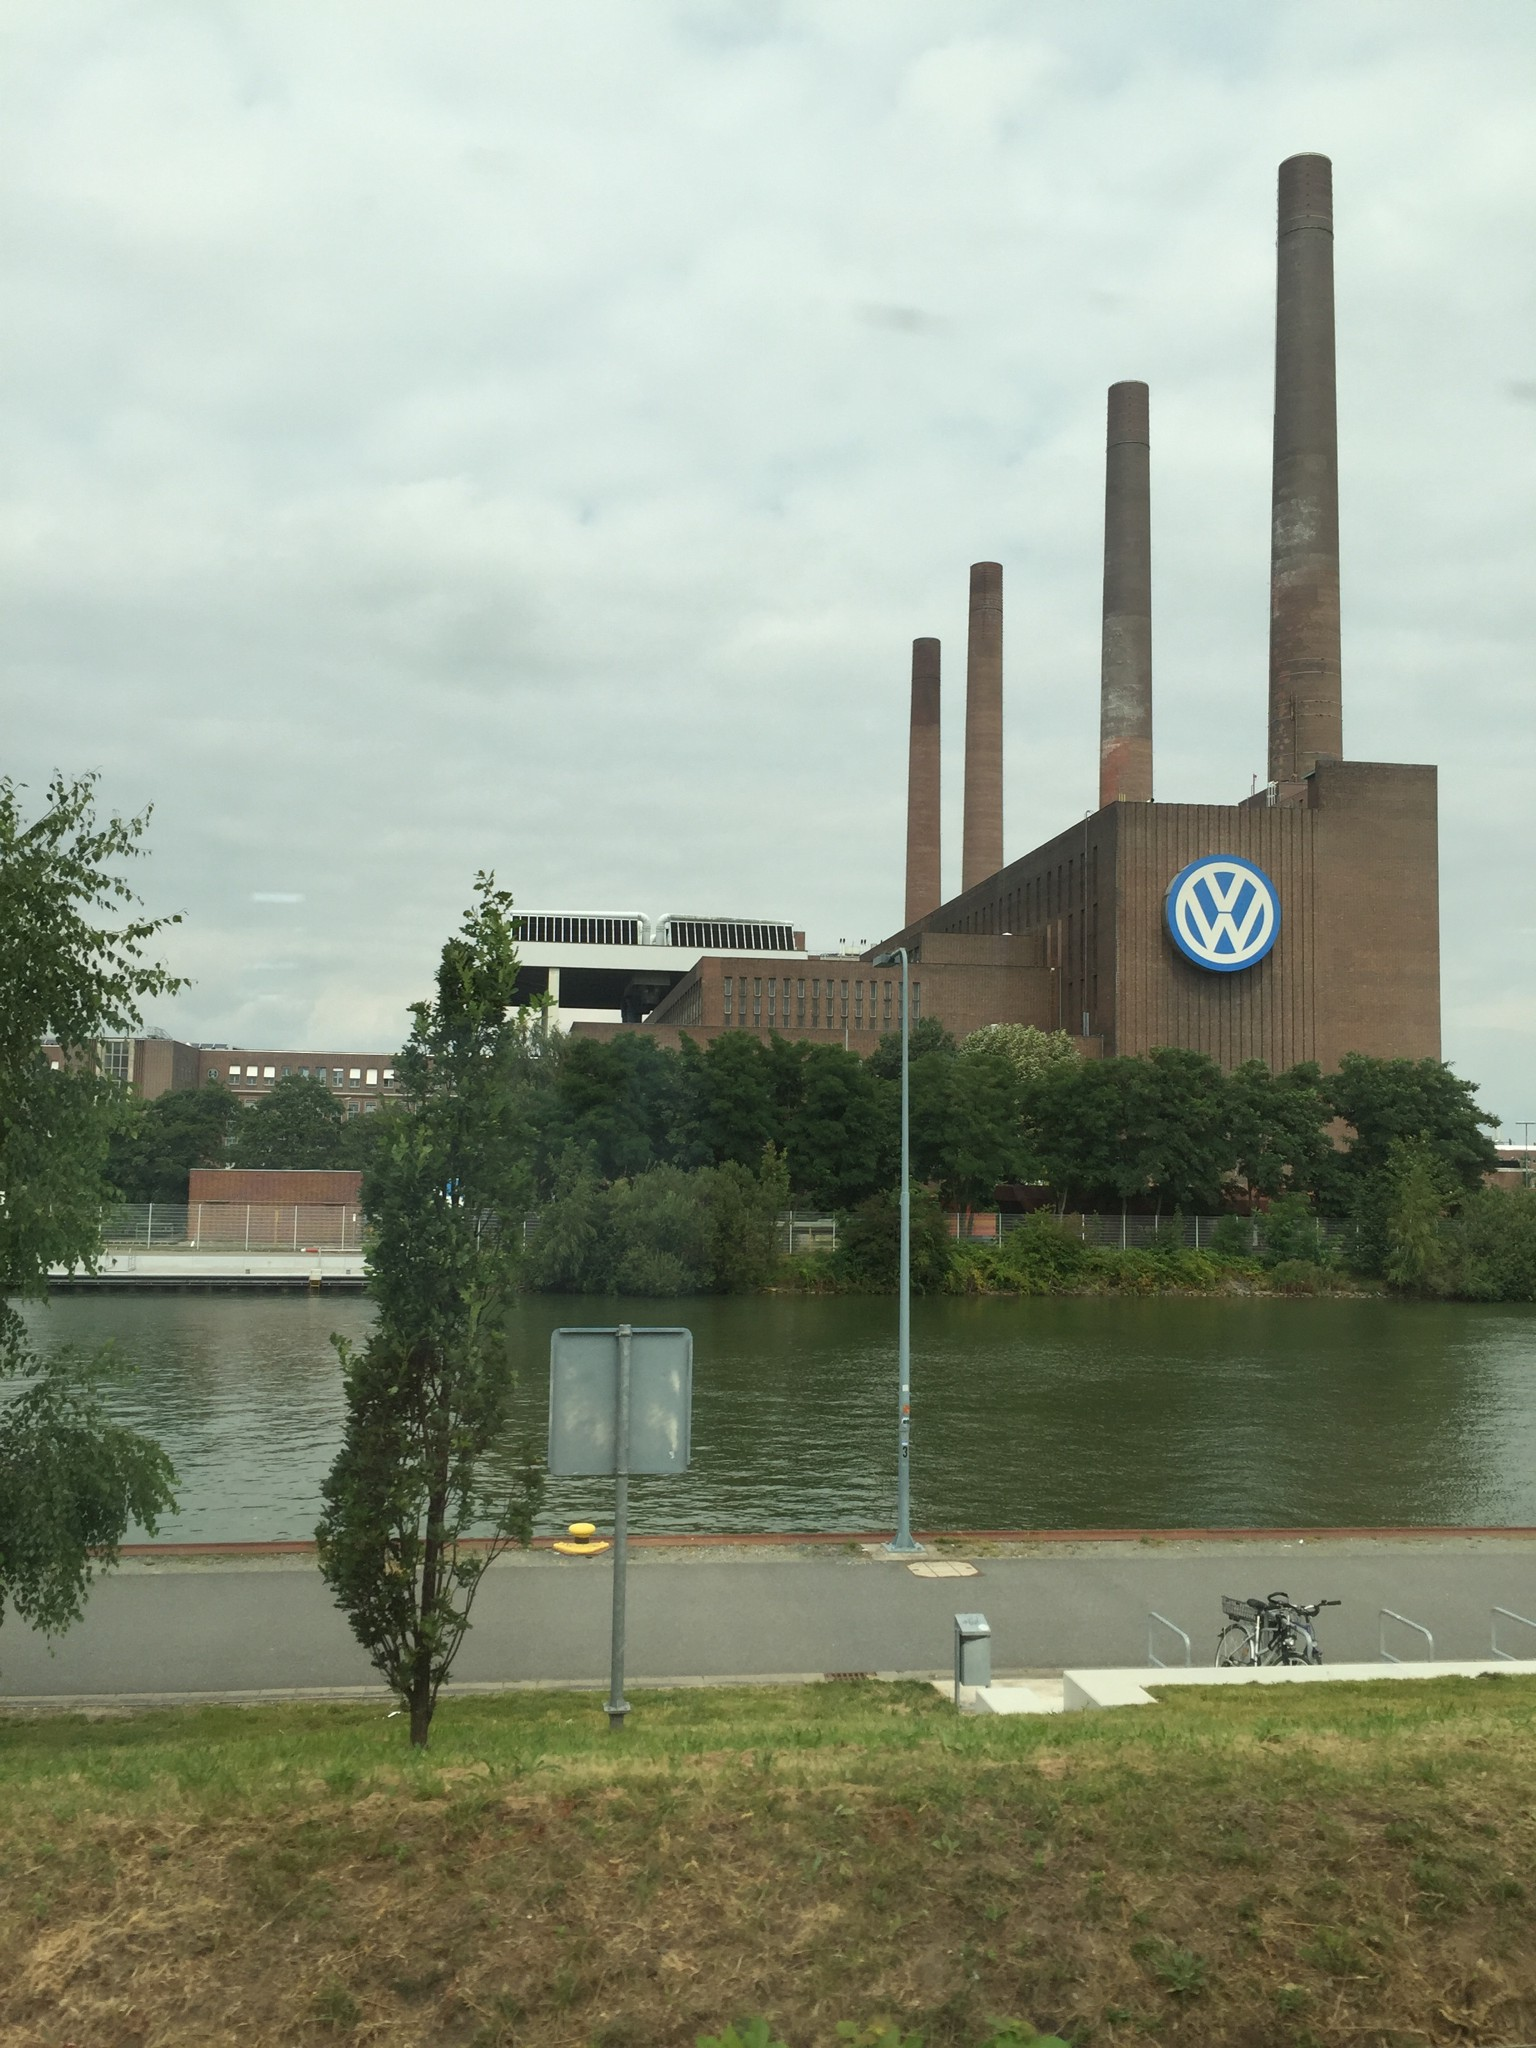 A very small portion of the Volkswagen plant in Wolfsburg